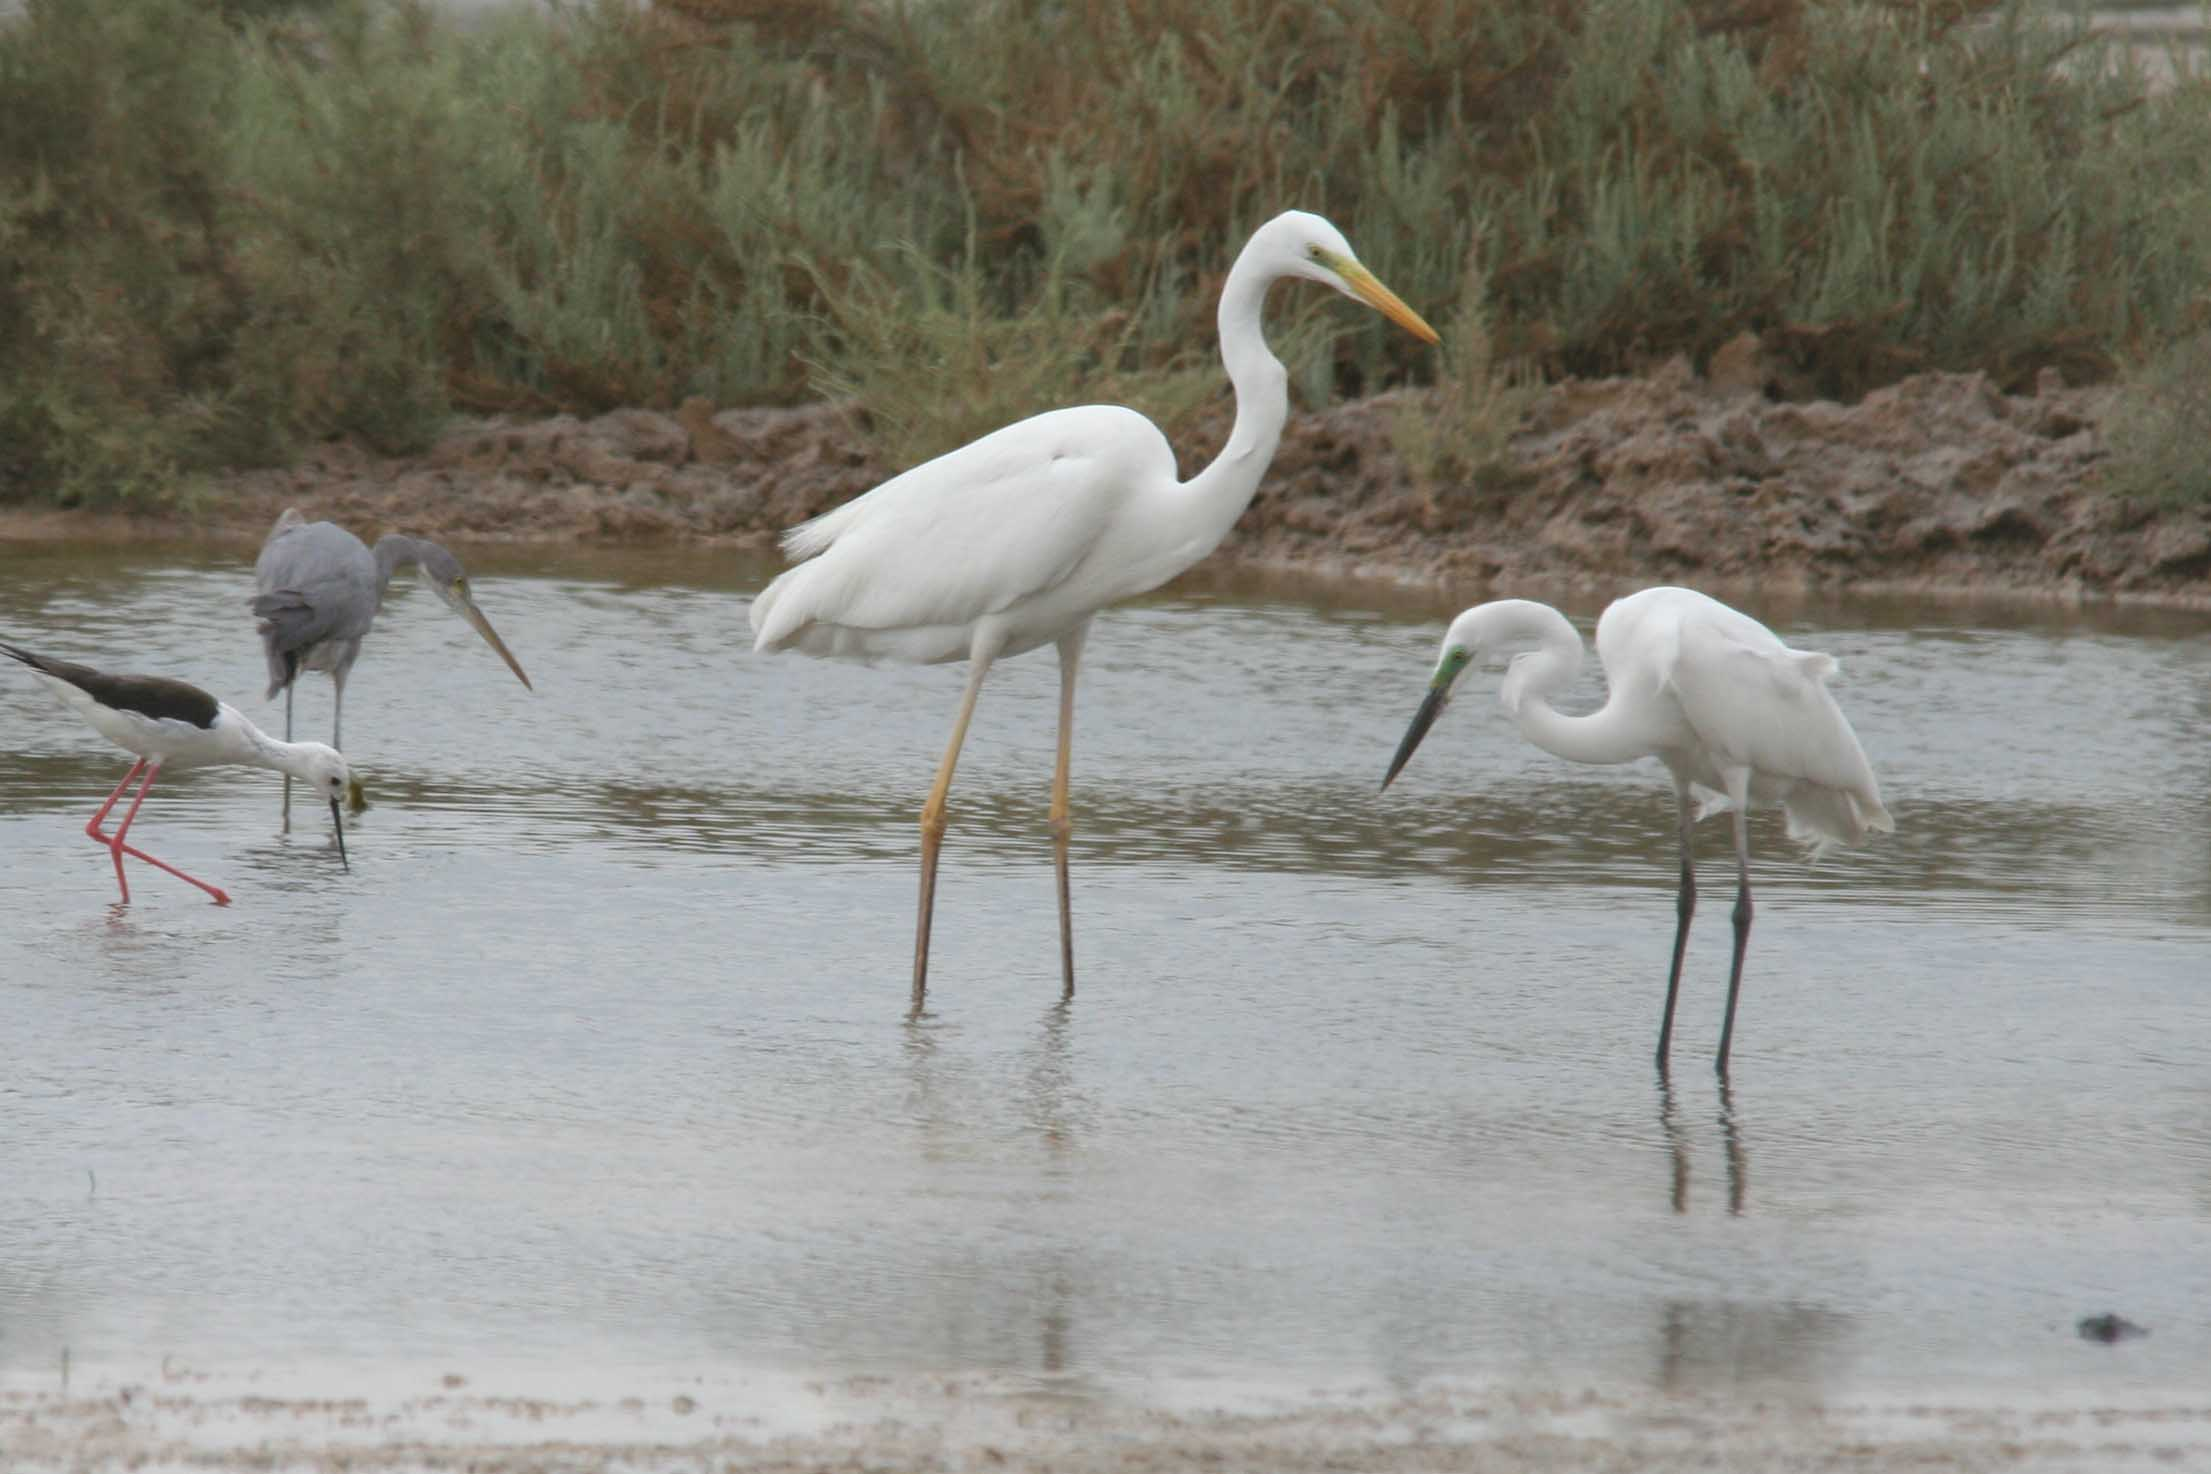 Eastern great egret male and female photos